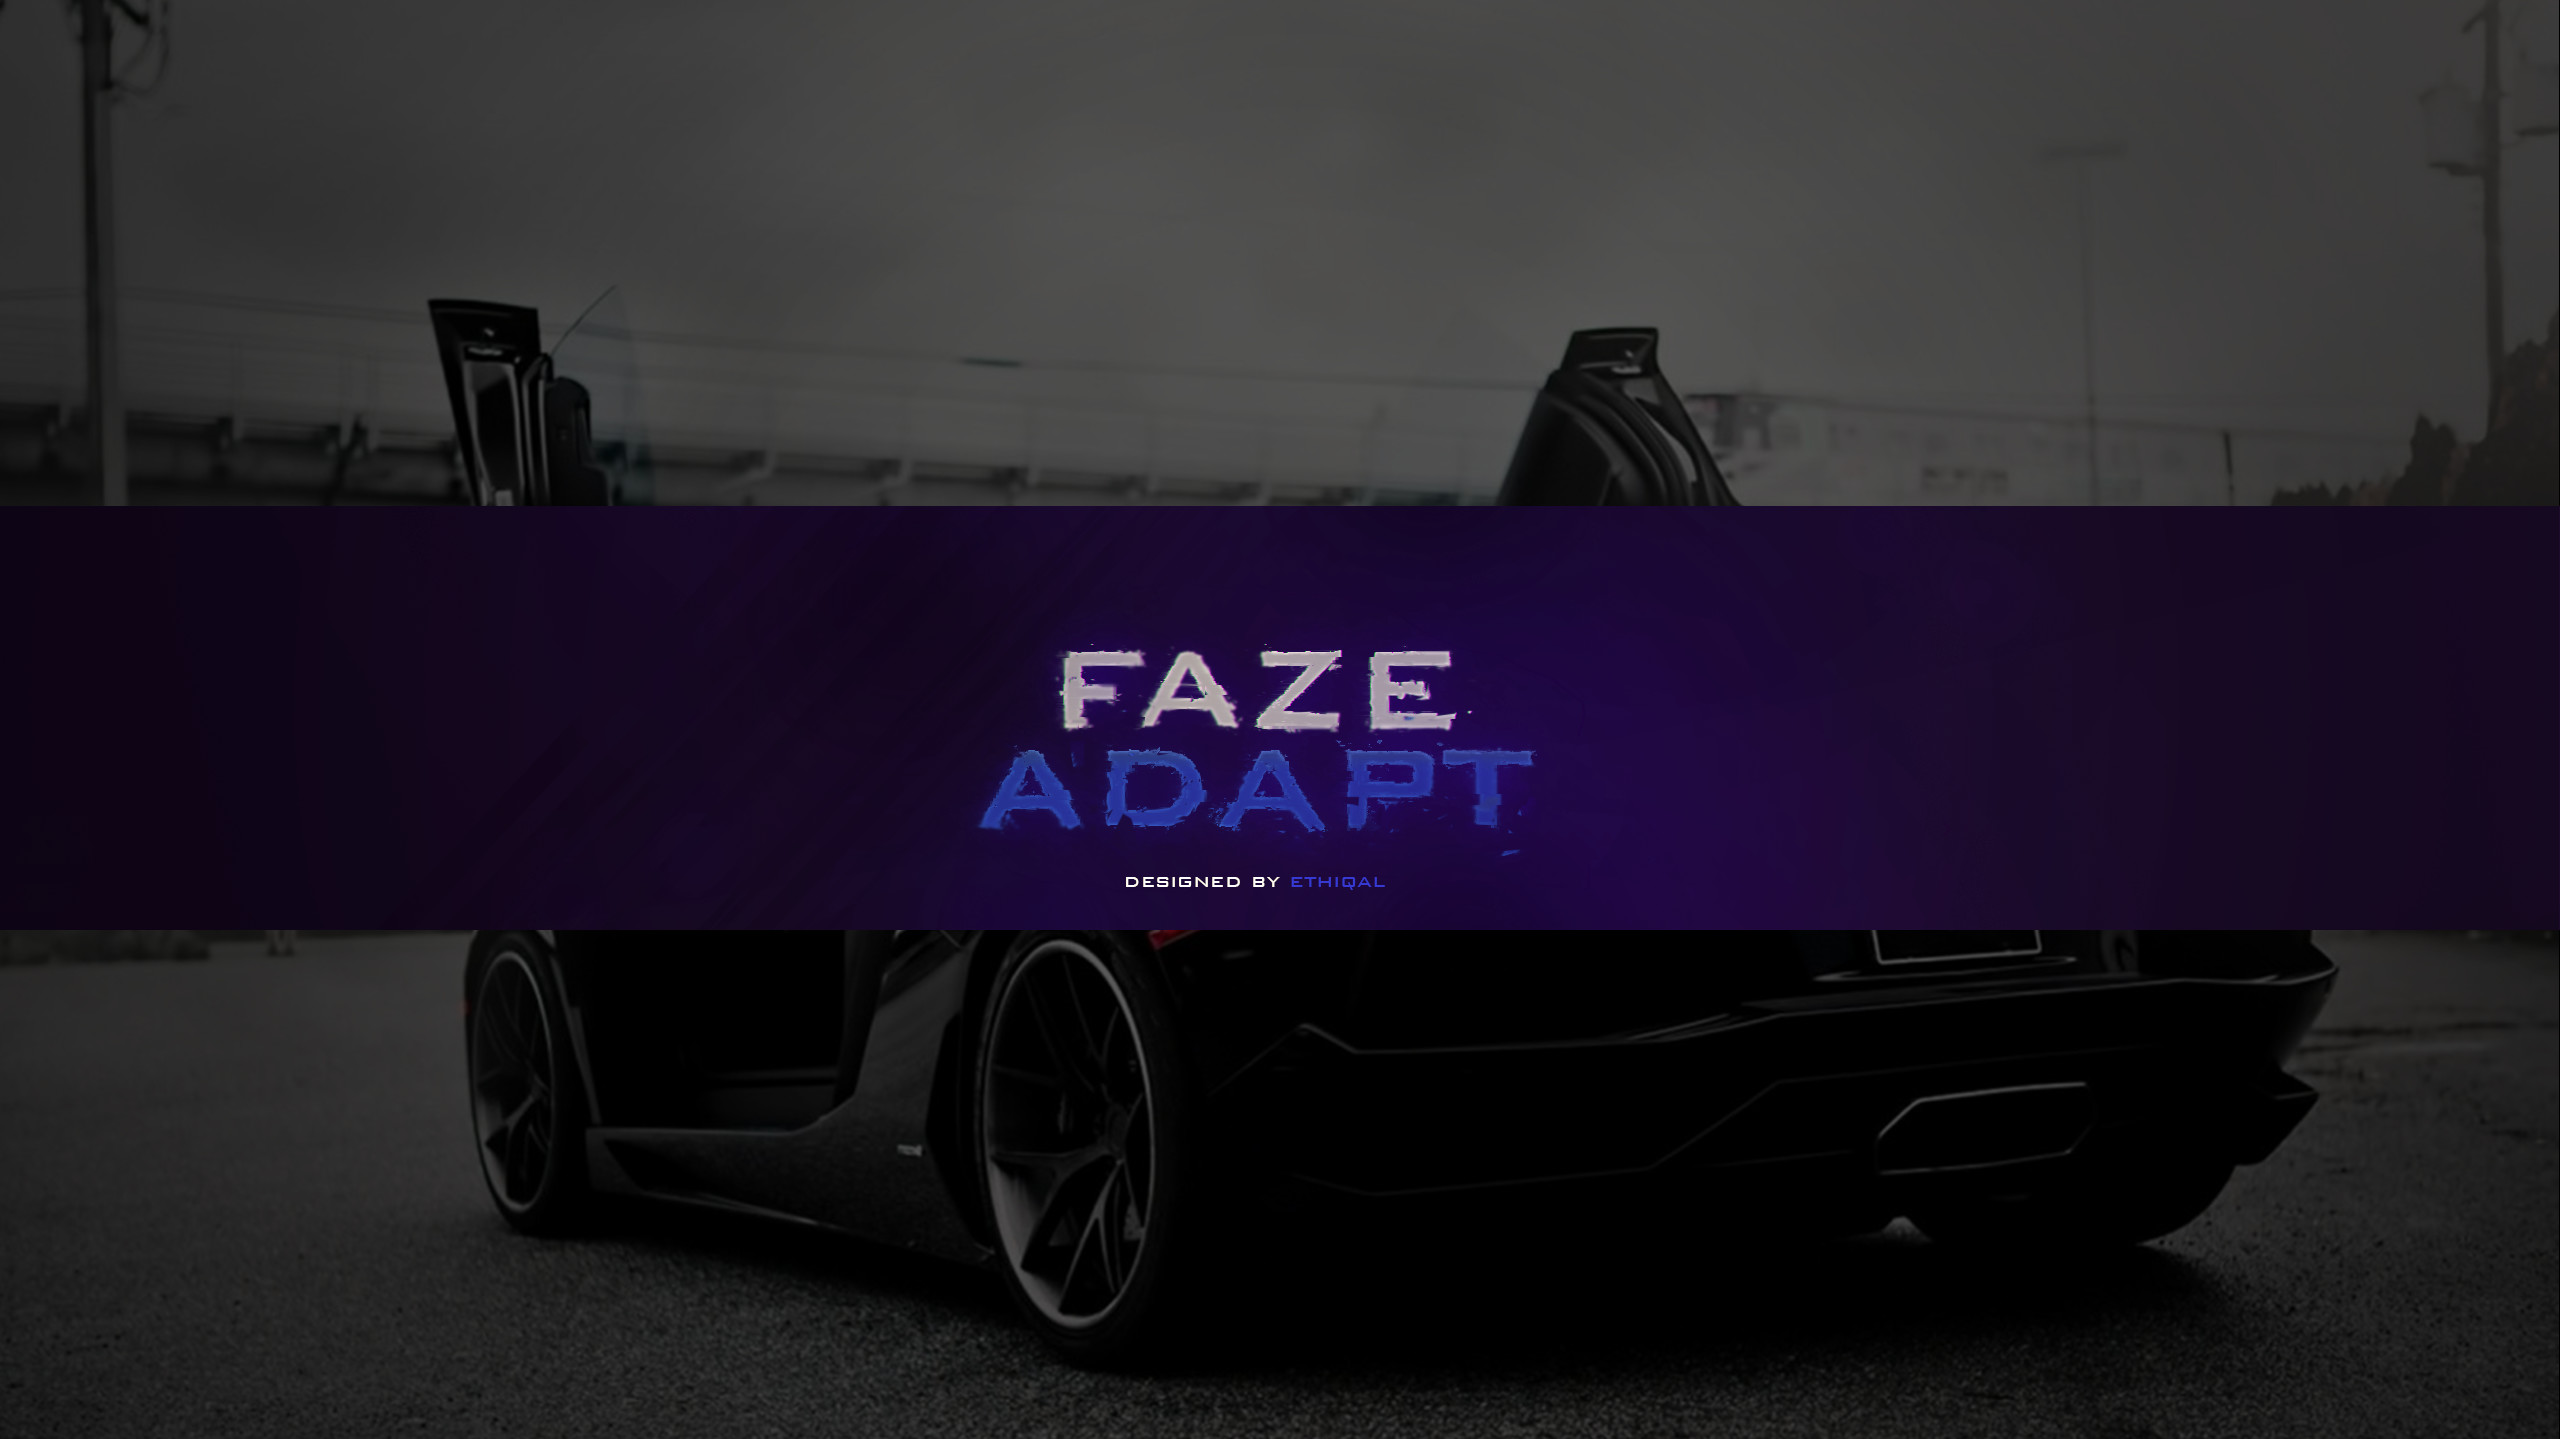 Faze Adapt Wallpaper 89 images 2560x1439